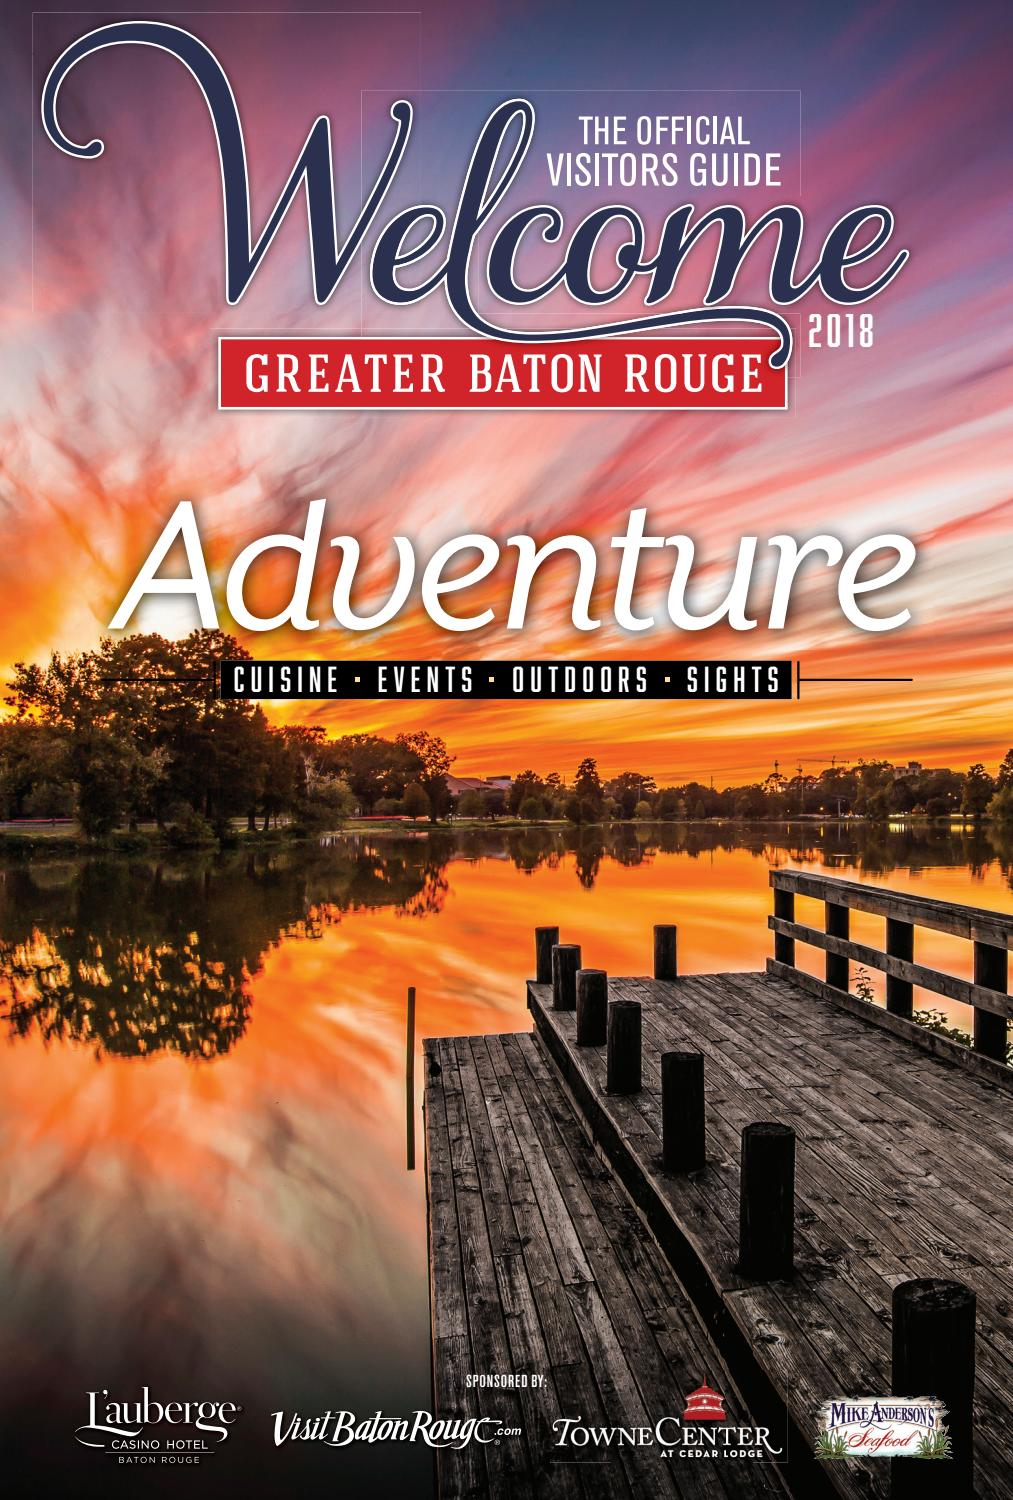 d3a78727929c1 2018 Welcome  The Official Visitors Guide to Greater Baton Rouge by Baton  Rouge Business Report - issuu